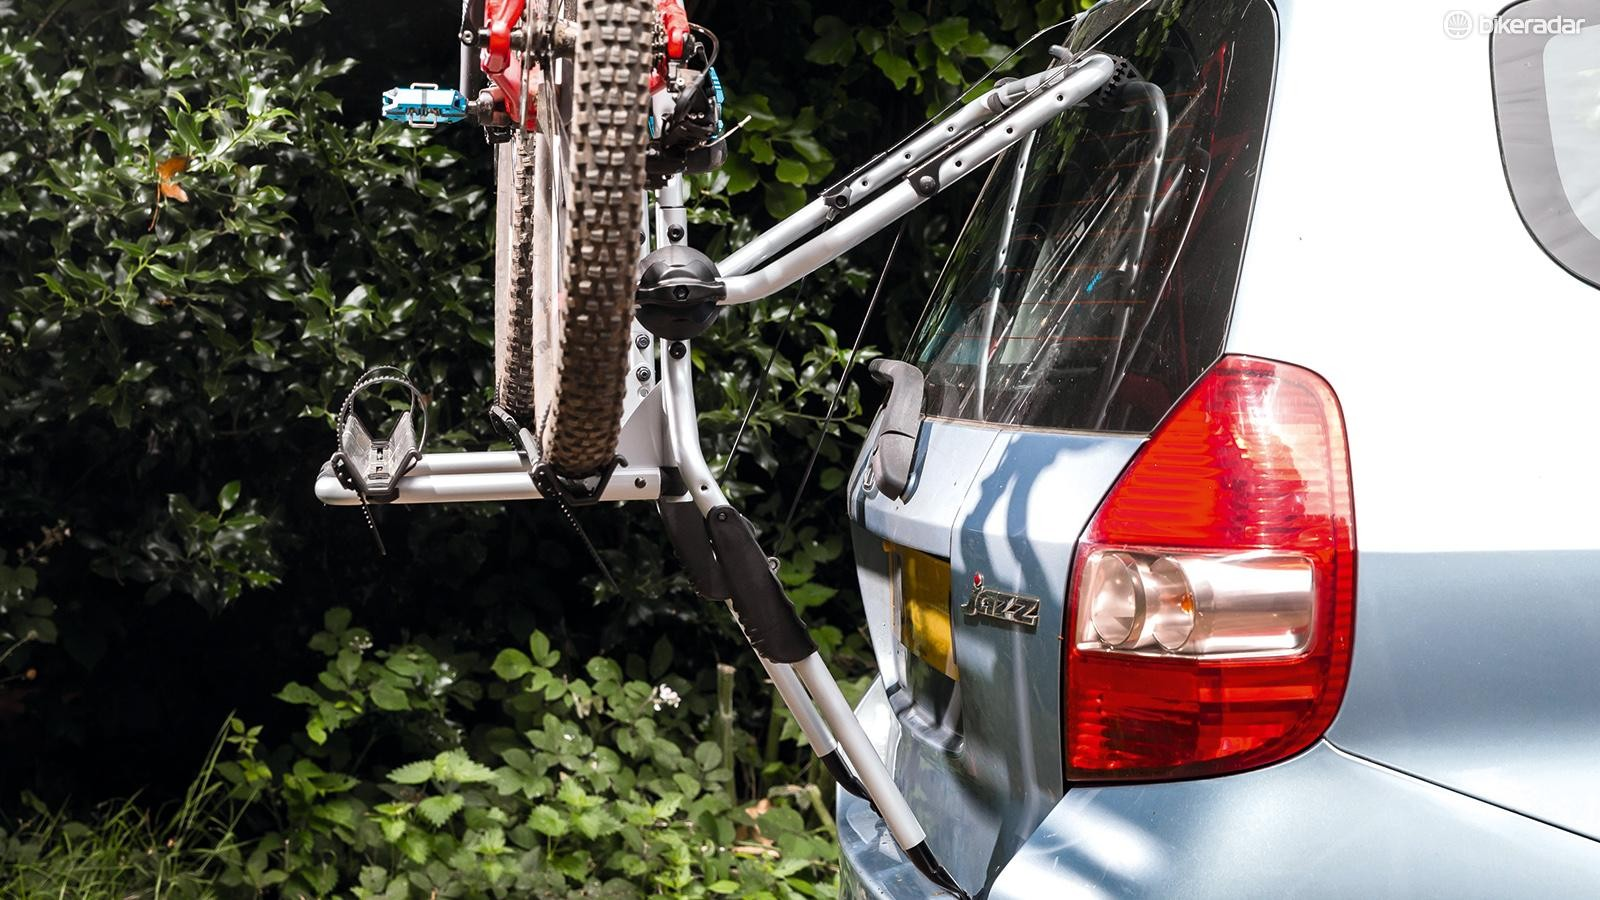 The Thule Clipon 9106 bike rack